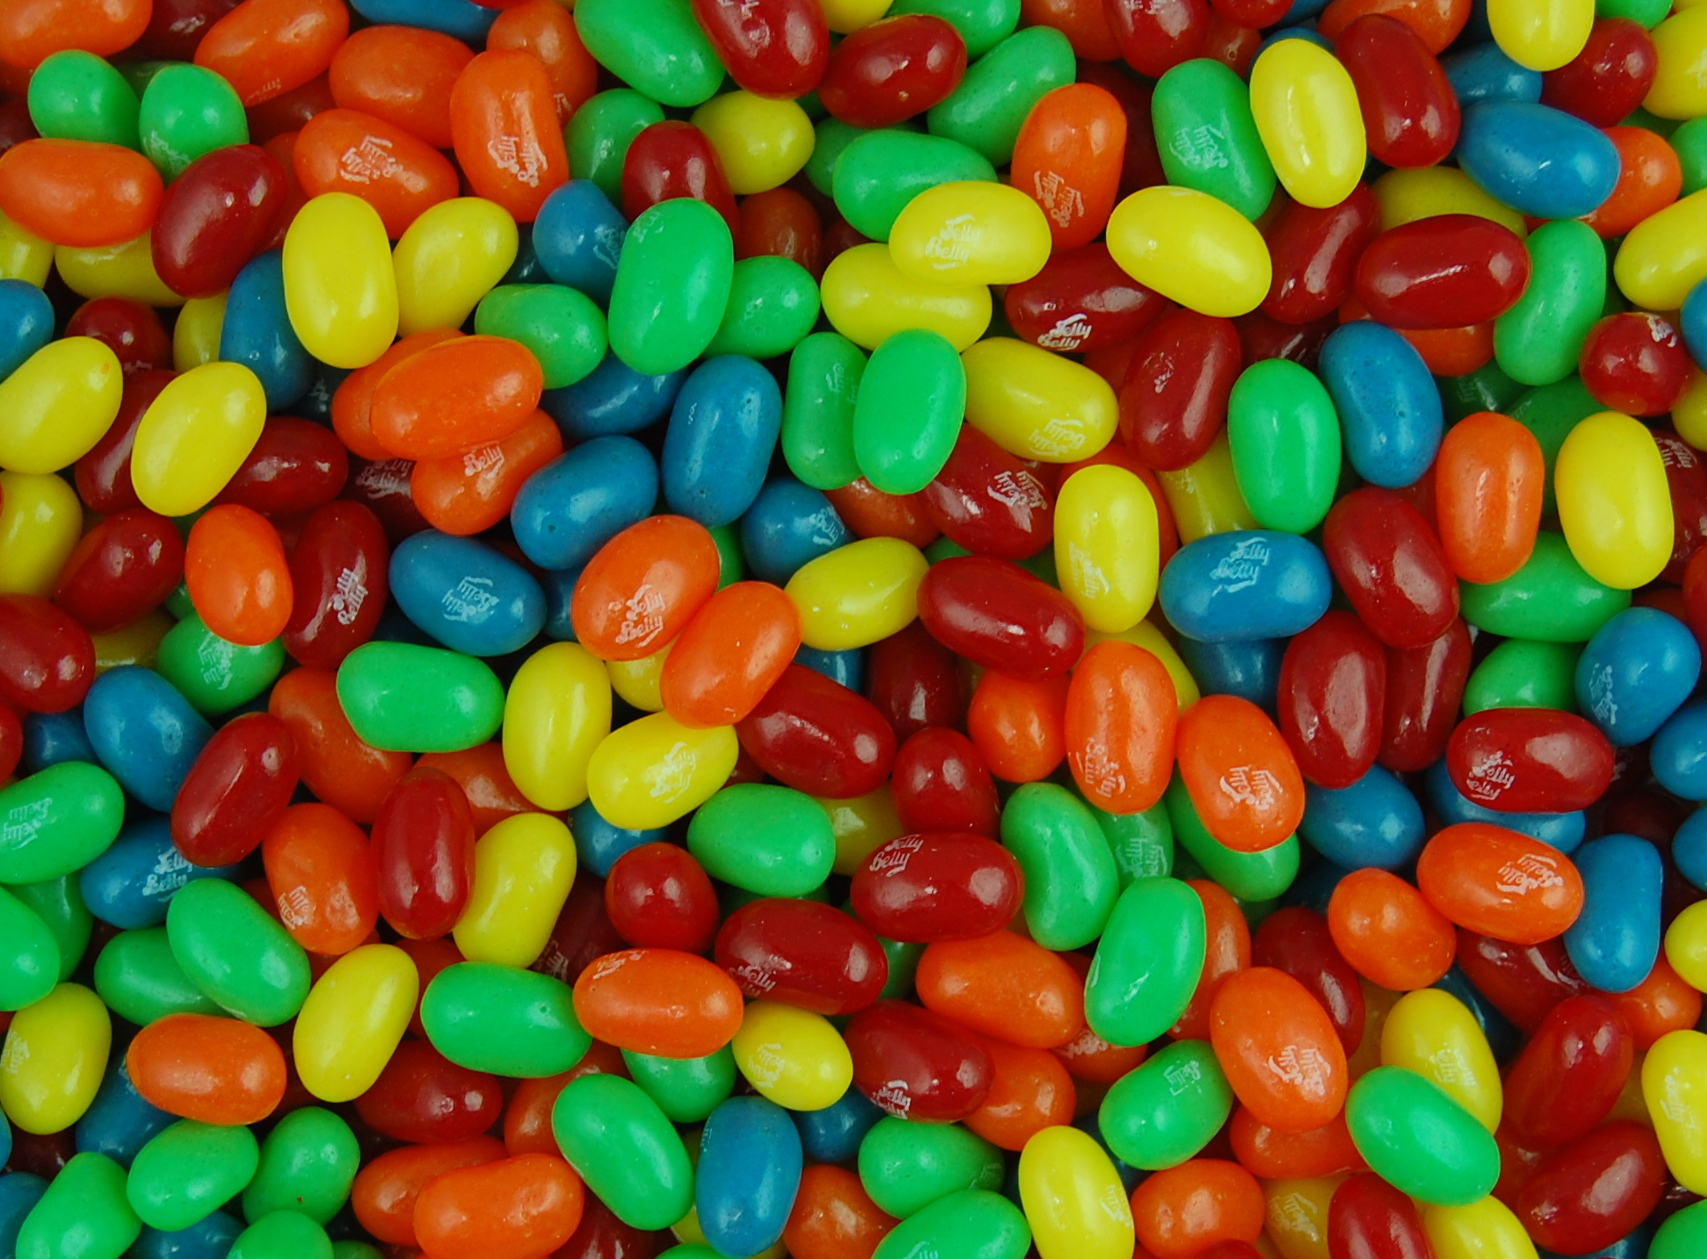 Amazing Jelly Belly Jelly Beans